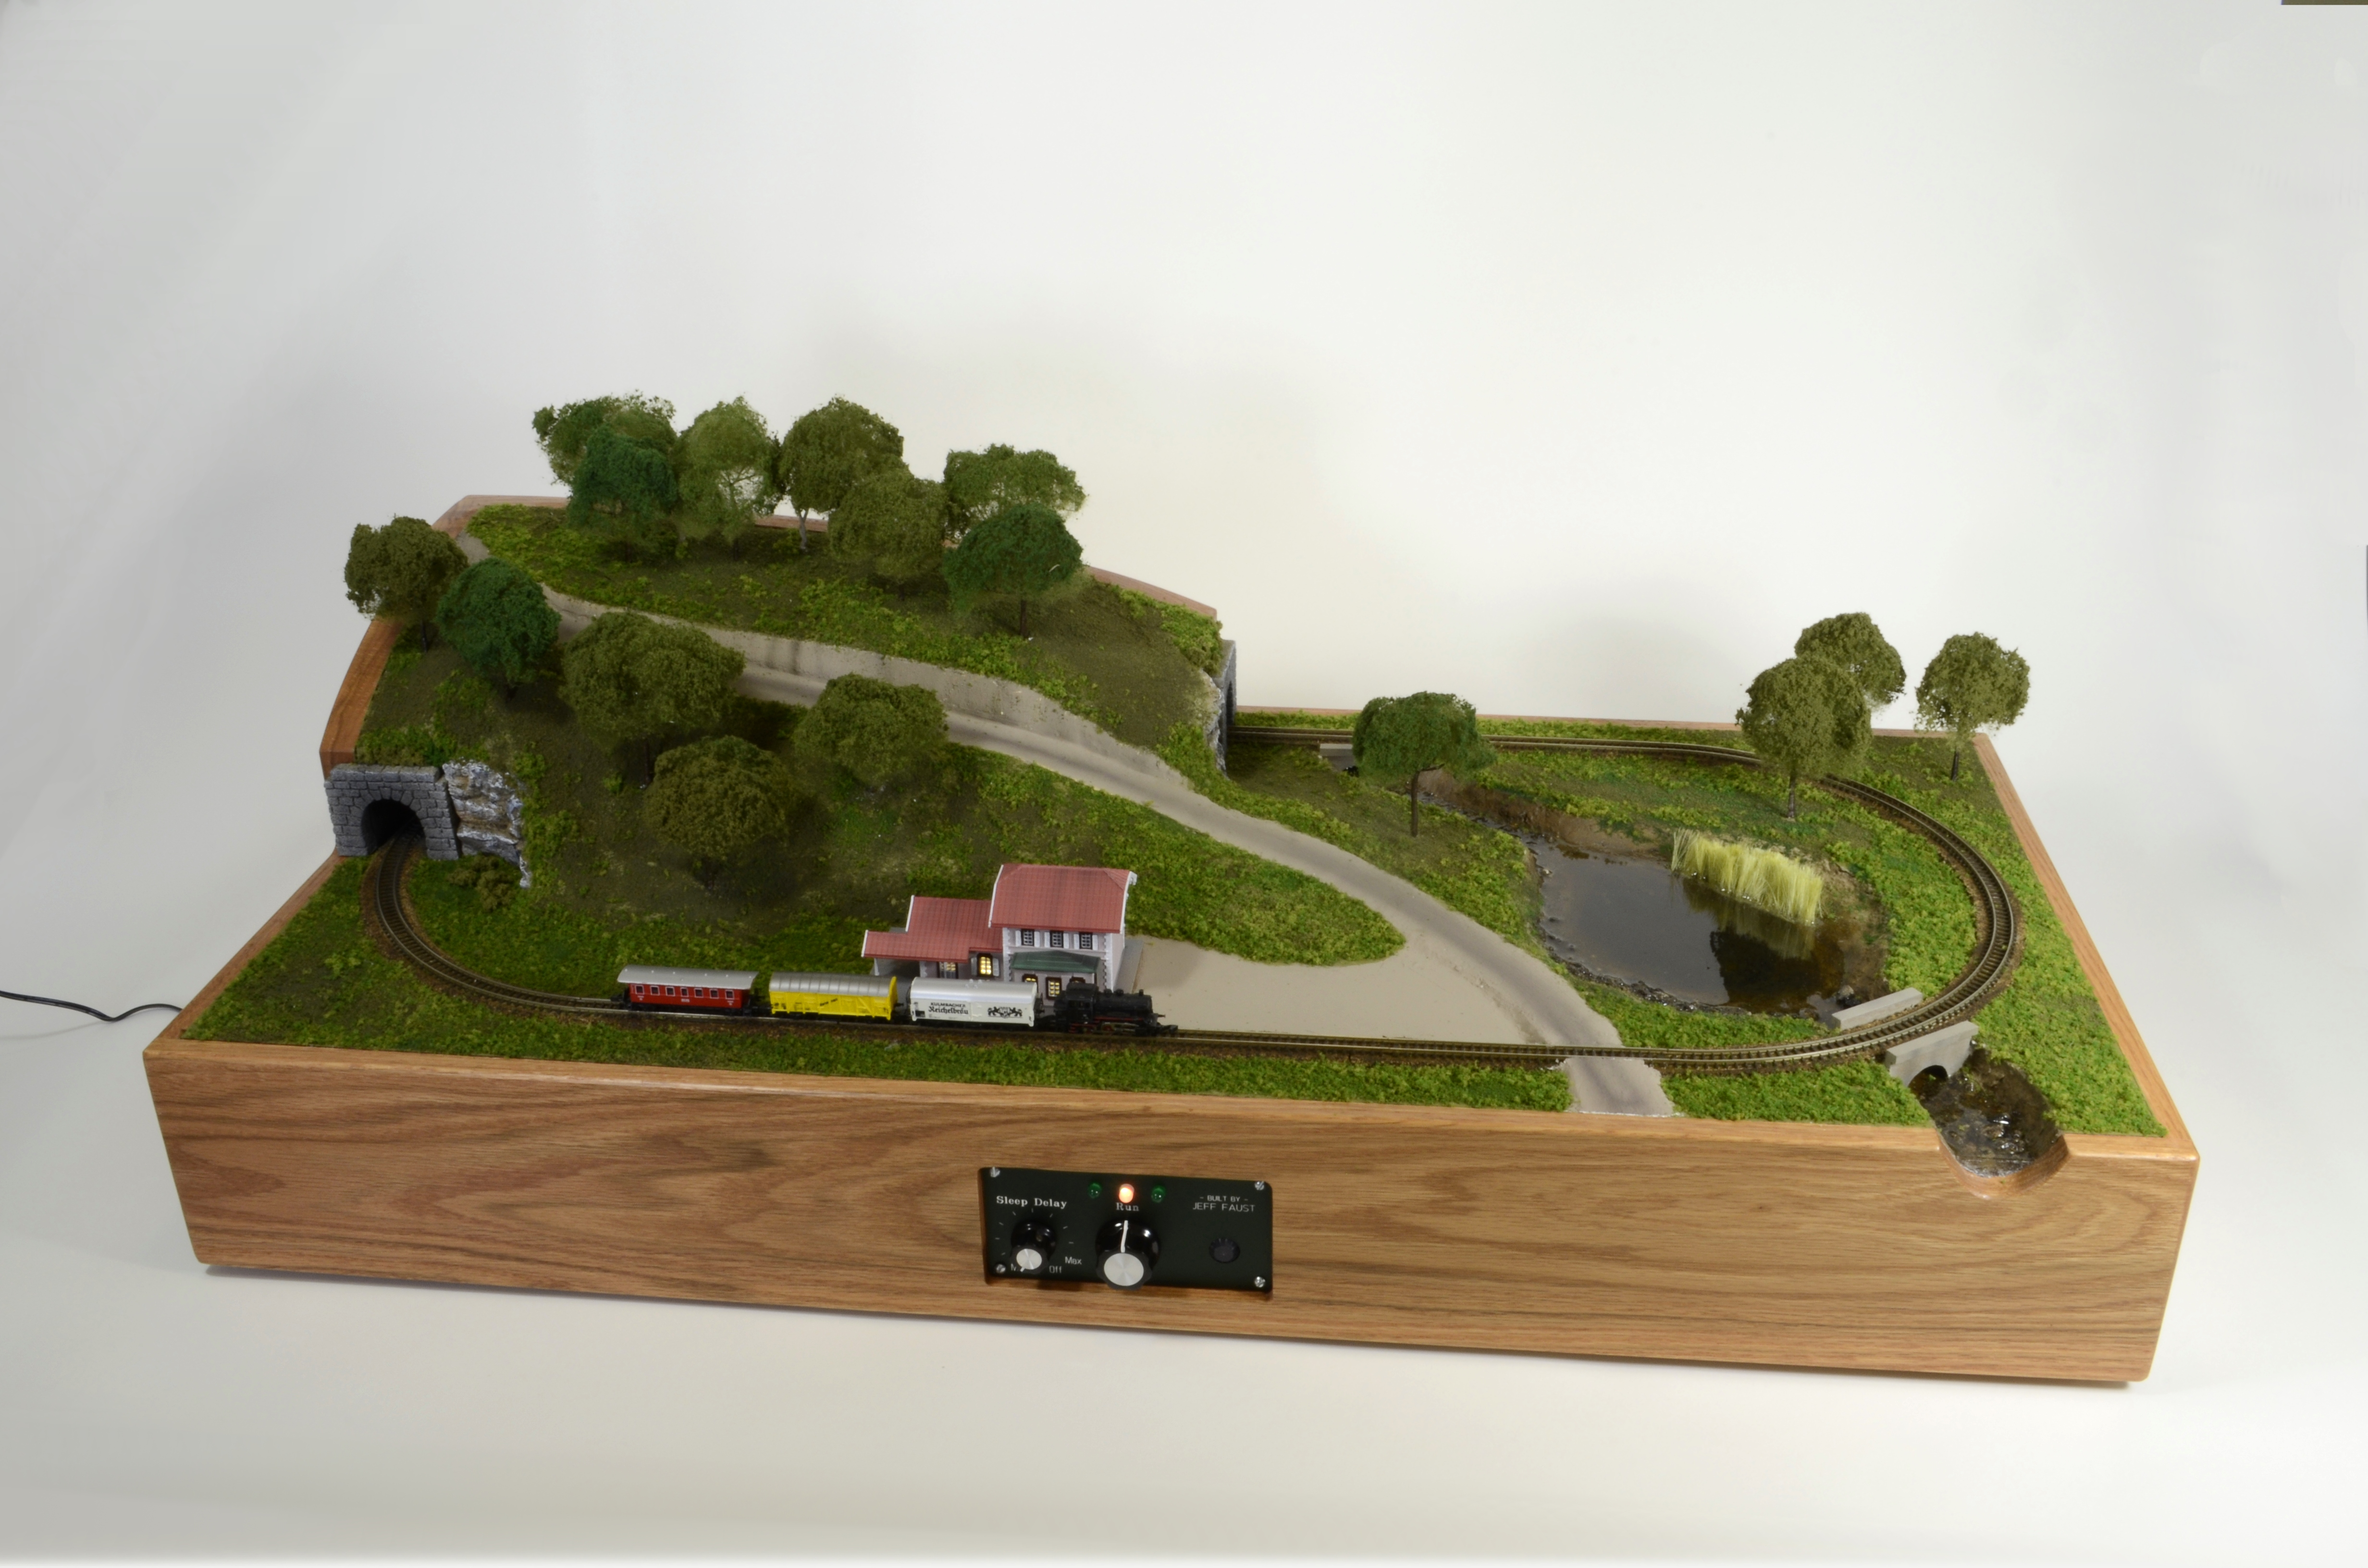 Bringing a Classic Marklin Z-Scale Model Railroad to Life With Arduino